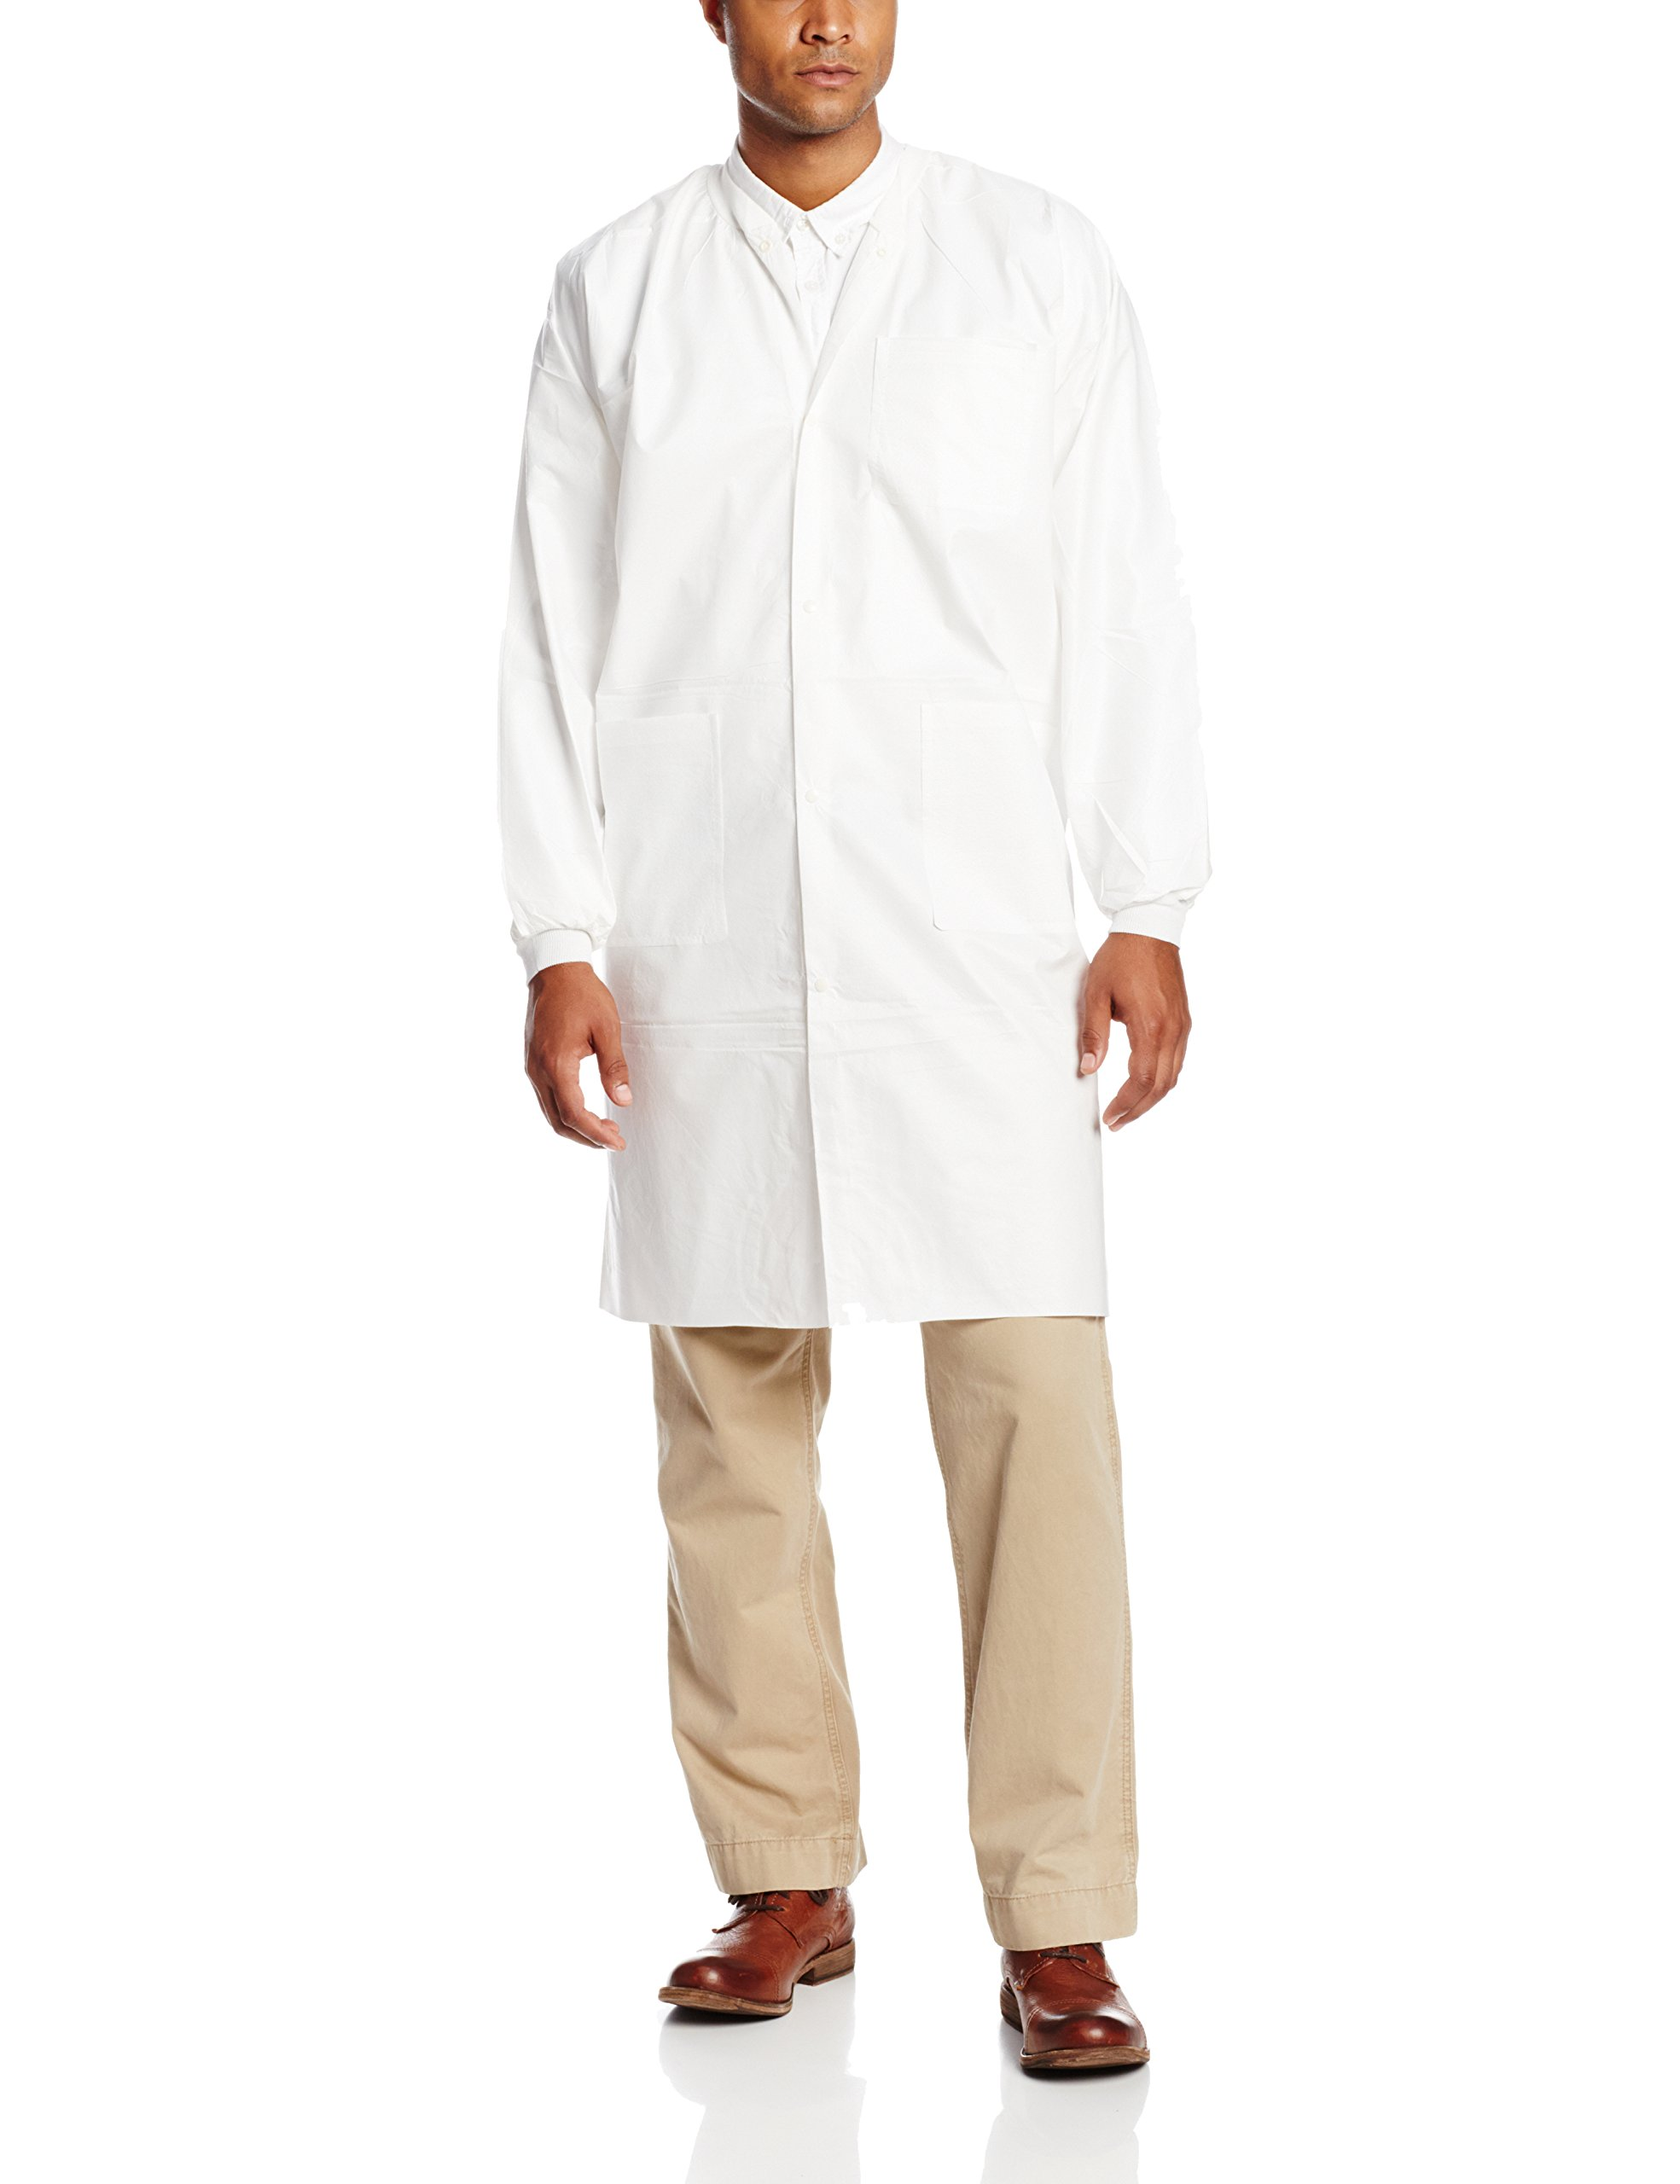 ValuMax 3960WHL LiquidGuard Microporous Breathable Film Disposable Lab Coats, 3 Pockets, Knee Length, White, L, Pack of 10